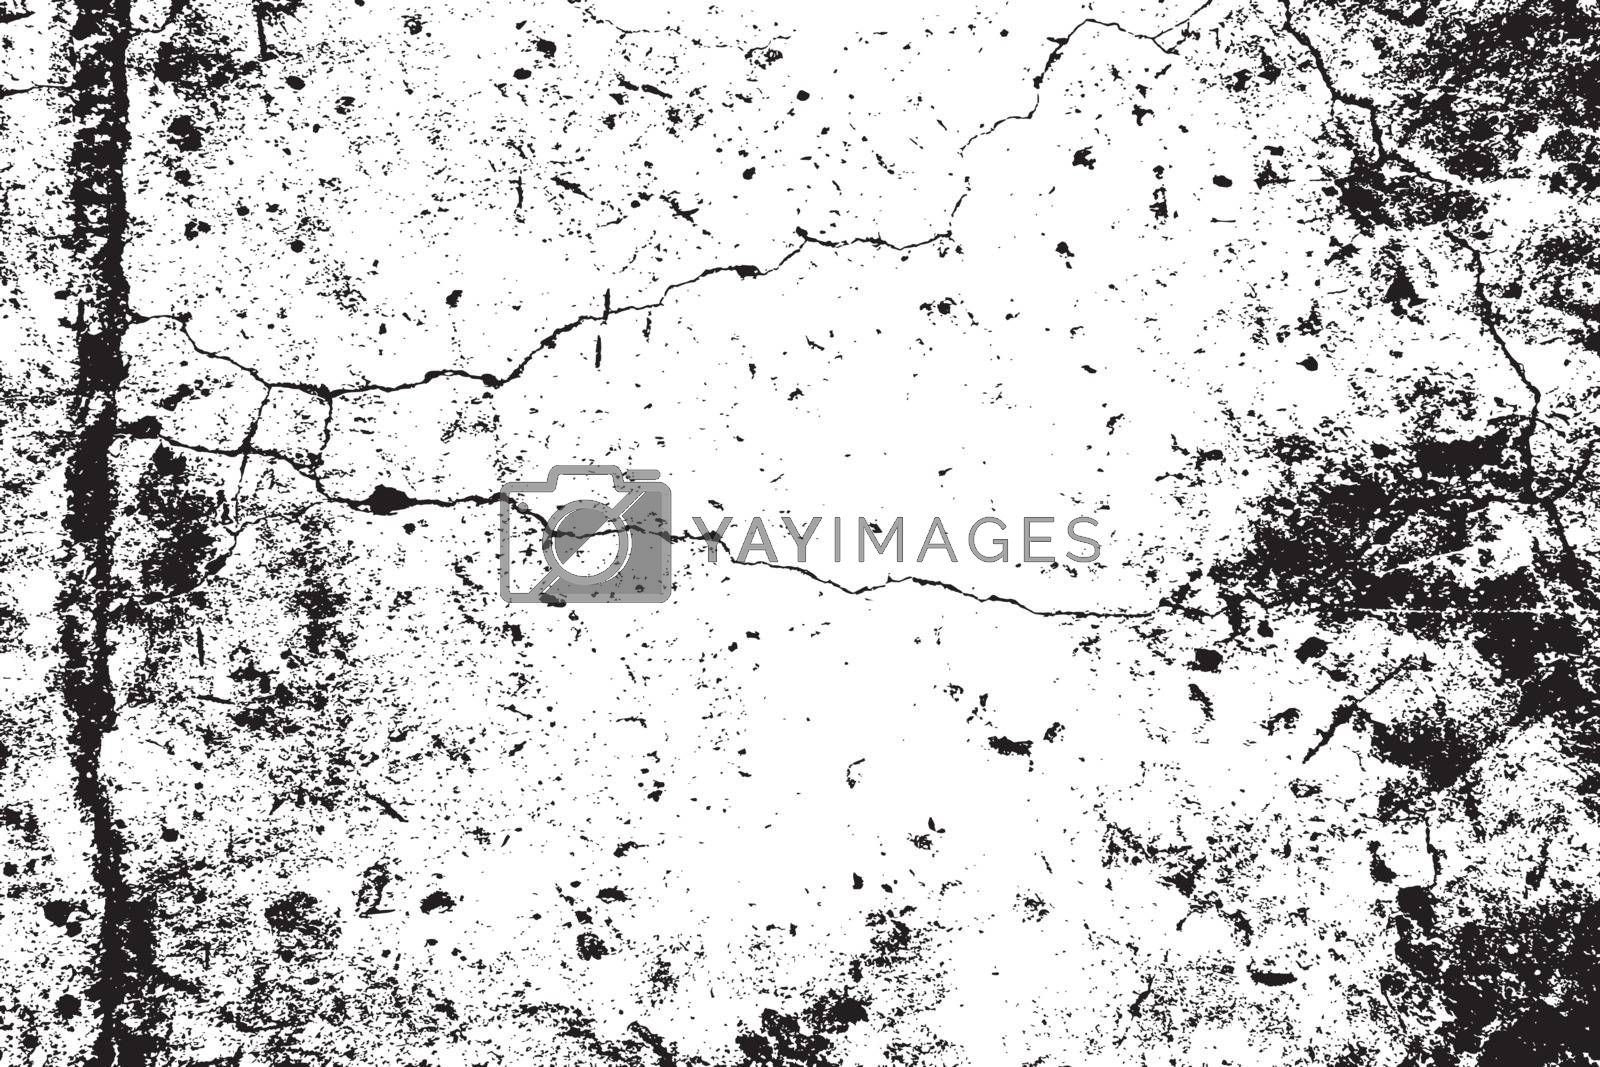 Distress urban used texture. Grunge rough dirty background. Brushed black paint cover. Overlay aged grainy messy template. Renovate wall frame grimy backdrop. Empty aging design element. EPS10 vector.